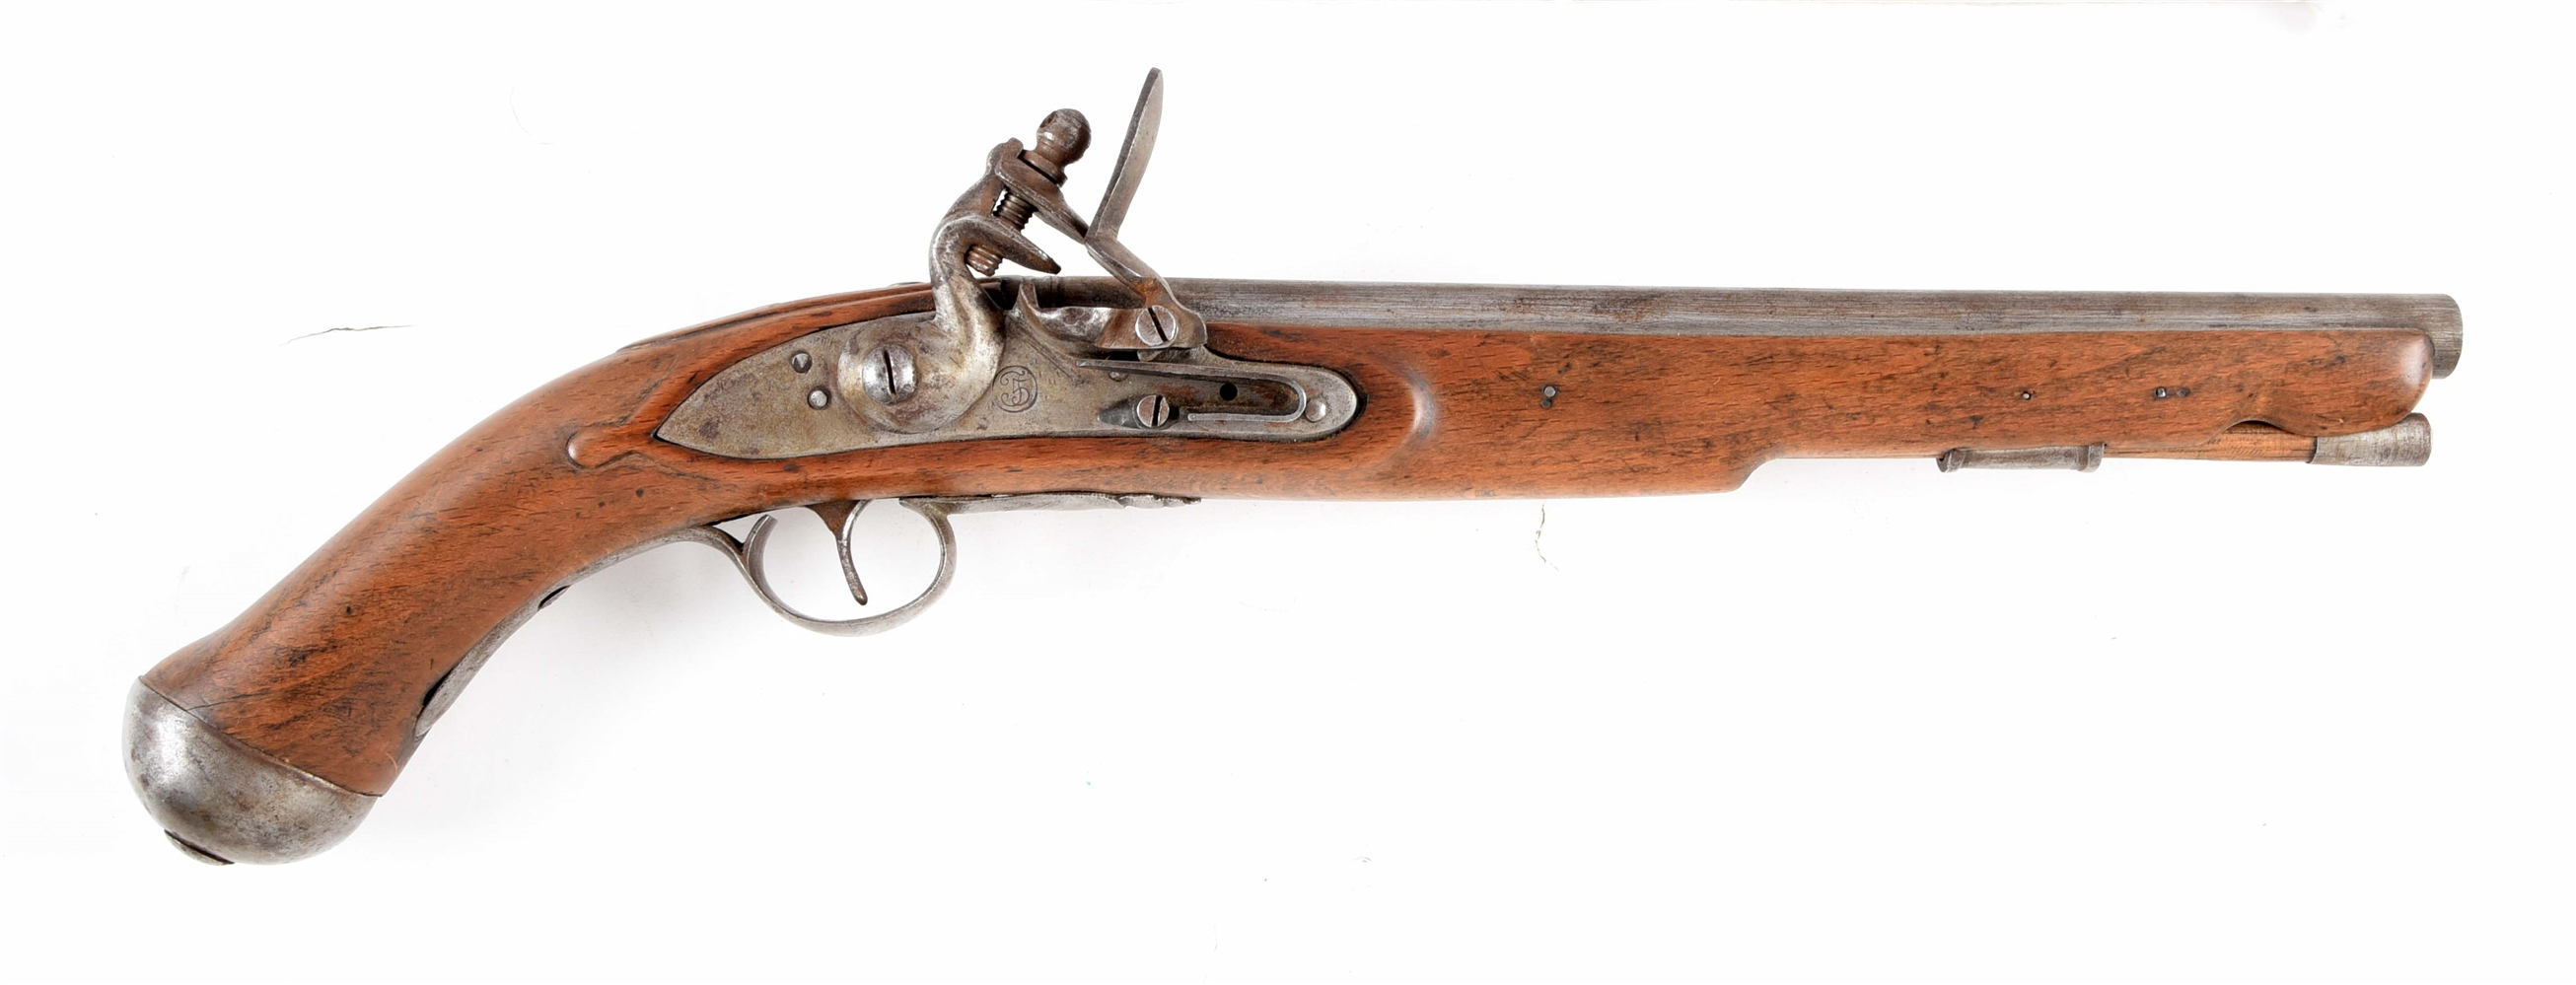 (A) REPRODUCTION FLINTLOCK SEA SERVICE PISTOL.